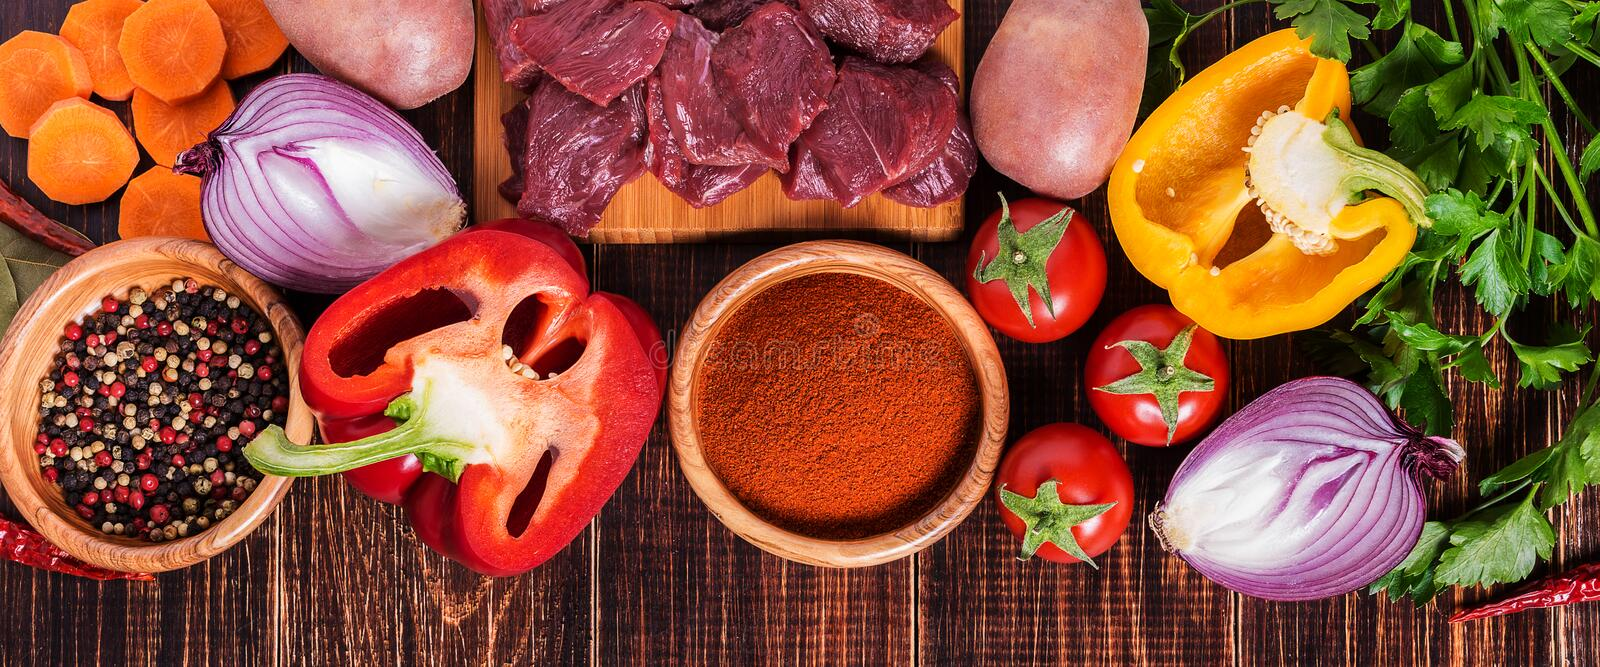 Ingredients for goulash cooking: raw meat,herbs,spices,vegetables stock photo